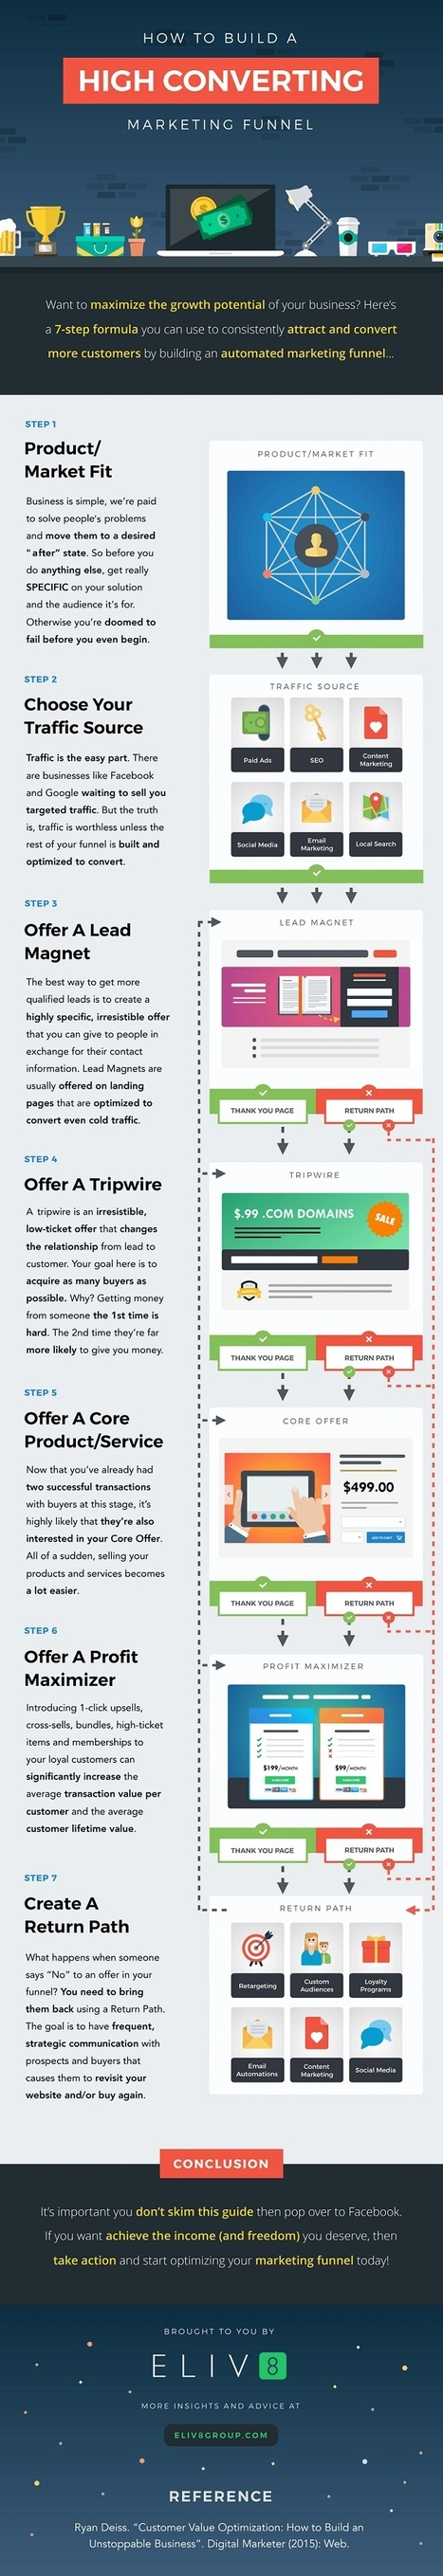 How to Build a High-Converting Marketing Funnel [Infographic] | Integrated Brand Communications | Scoop.it